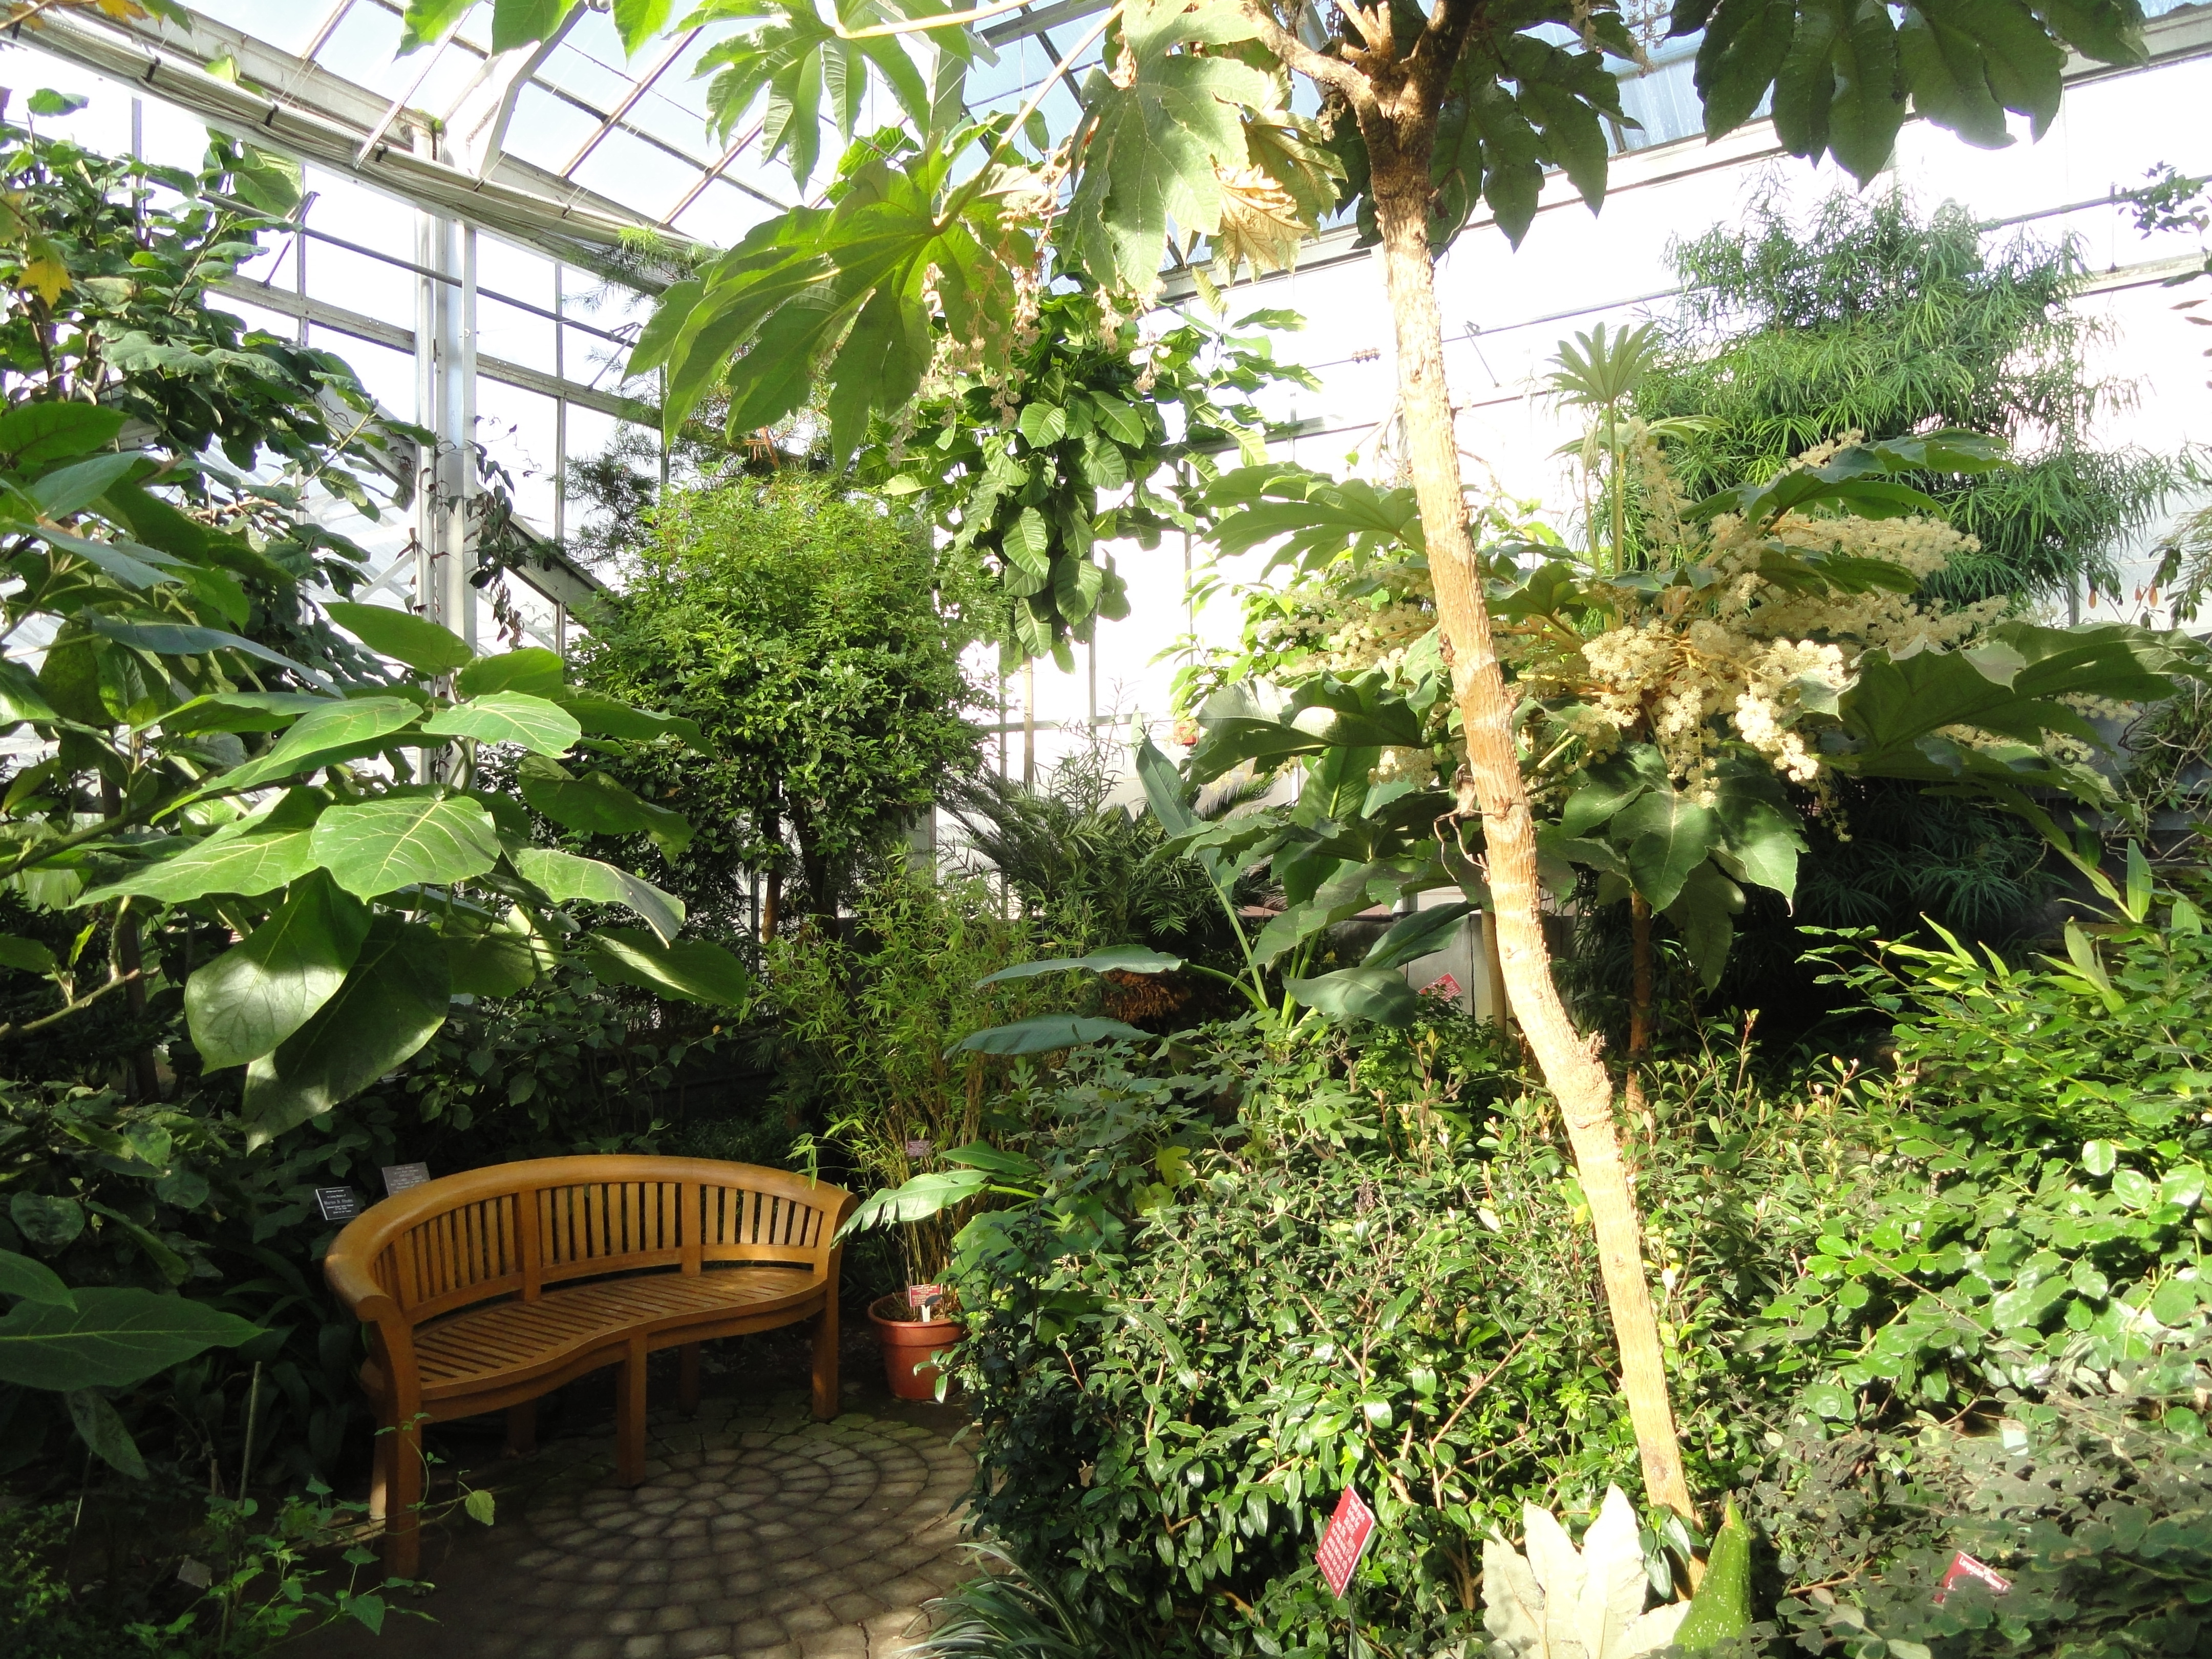 File cool temperate house lyman plant house smith college dsc04377 jpg wikimedia commons - Cool looking house plants ...